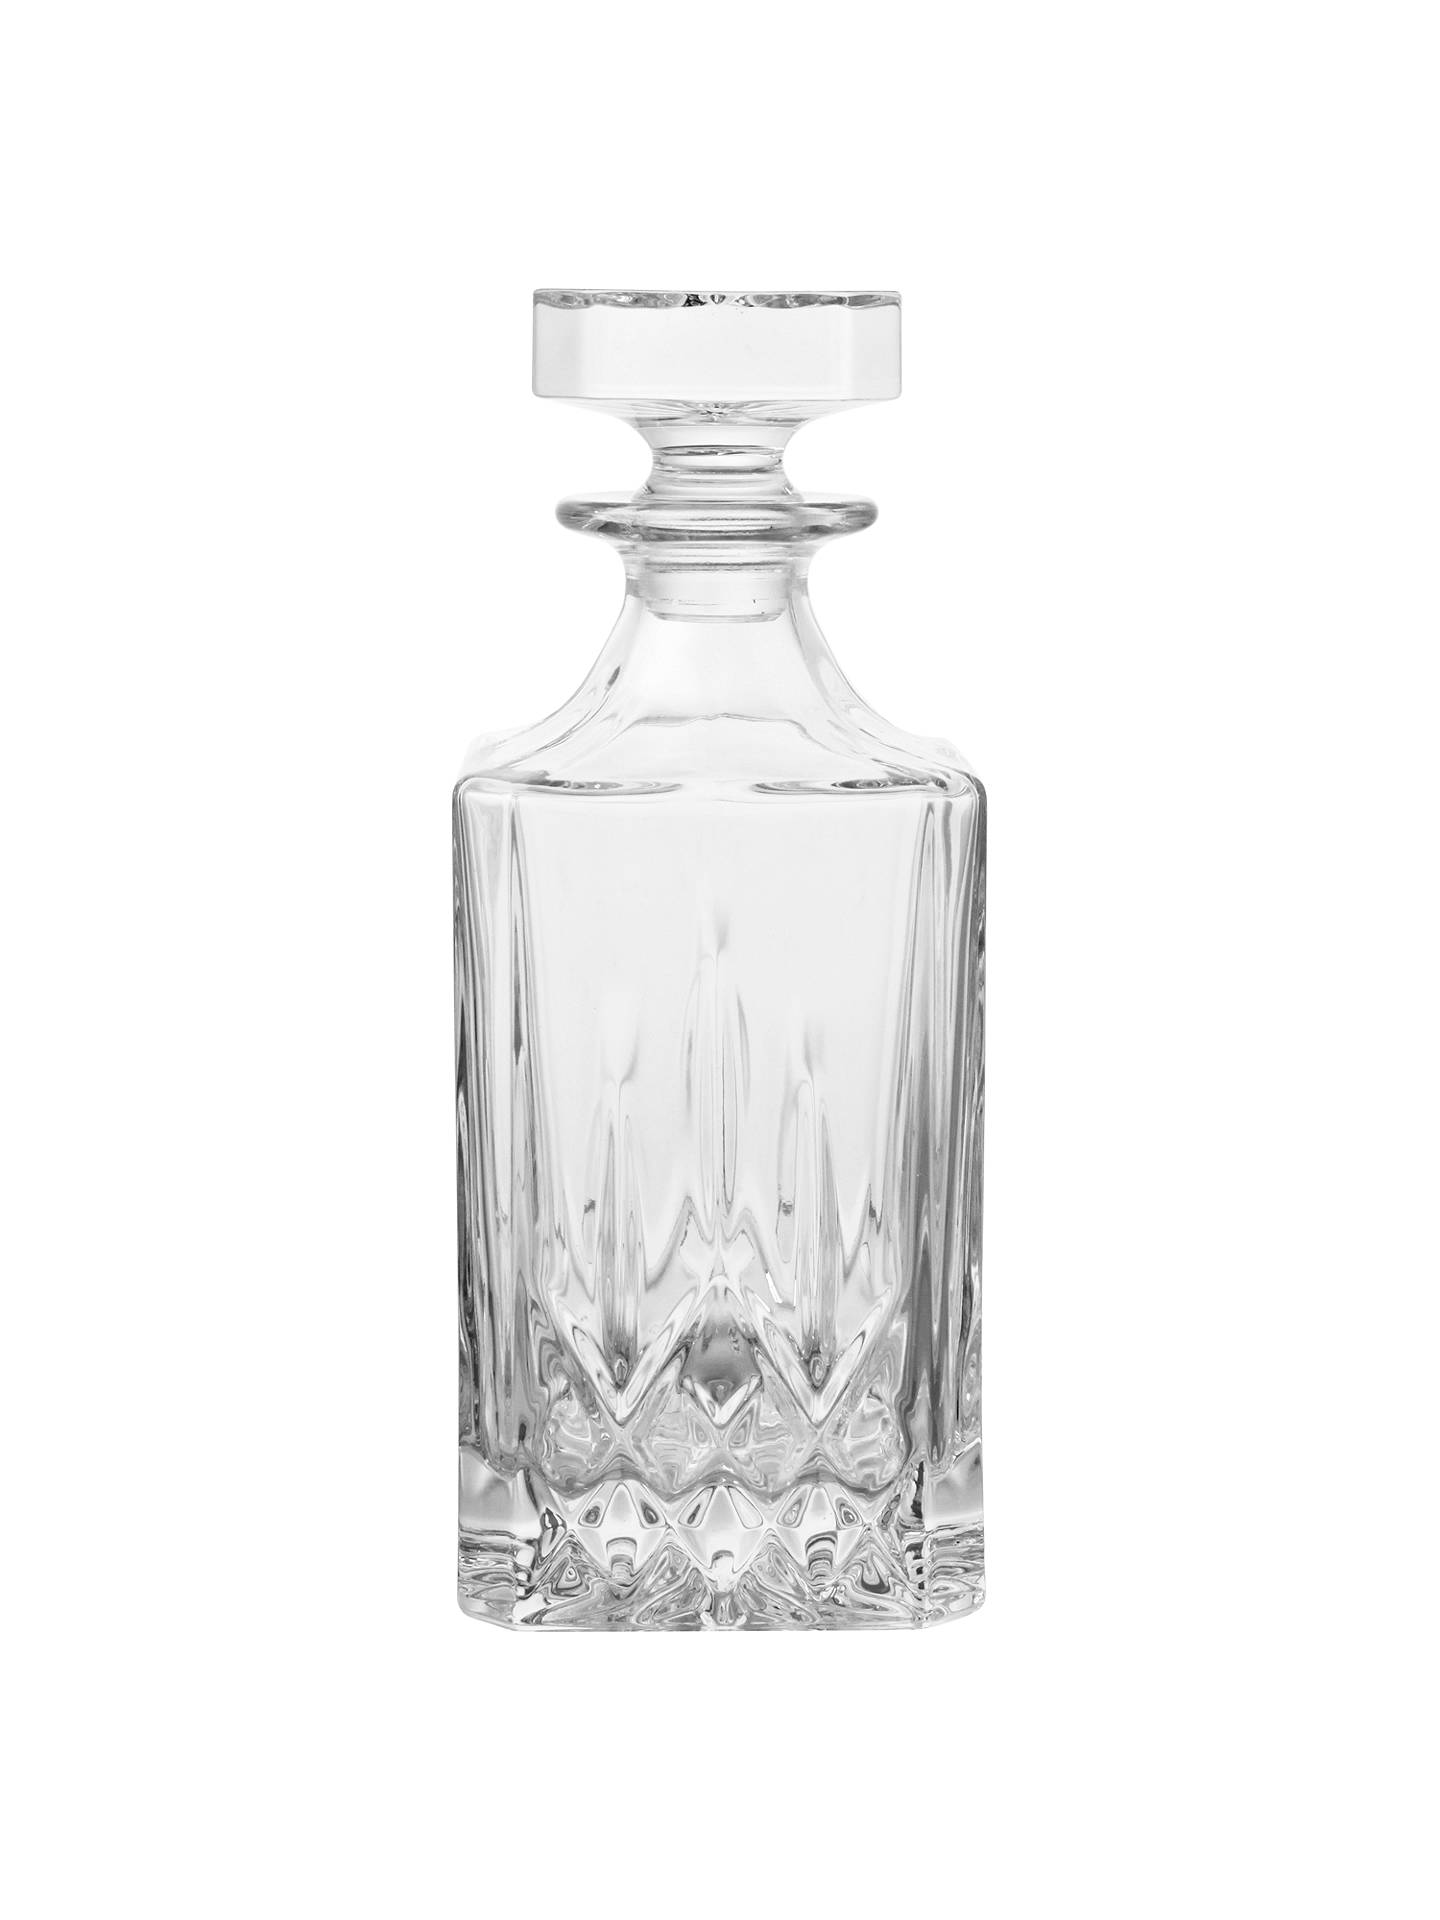 Buy Royal Doulton Seasons Decanter and Tumbler Set, 7 Pieces Online at johnlewis.com